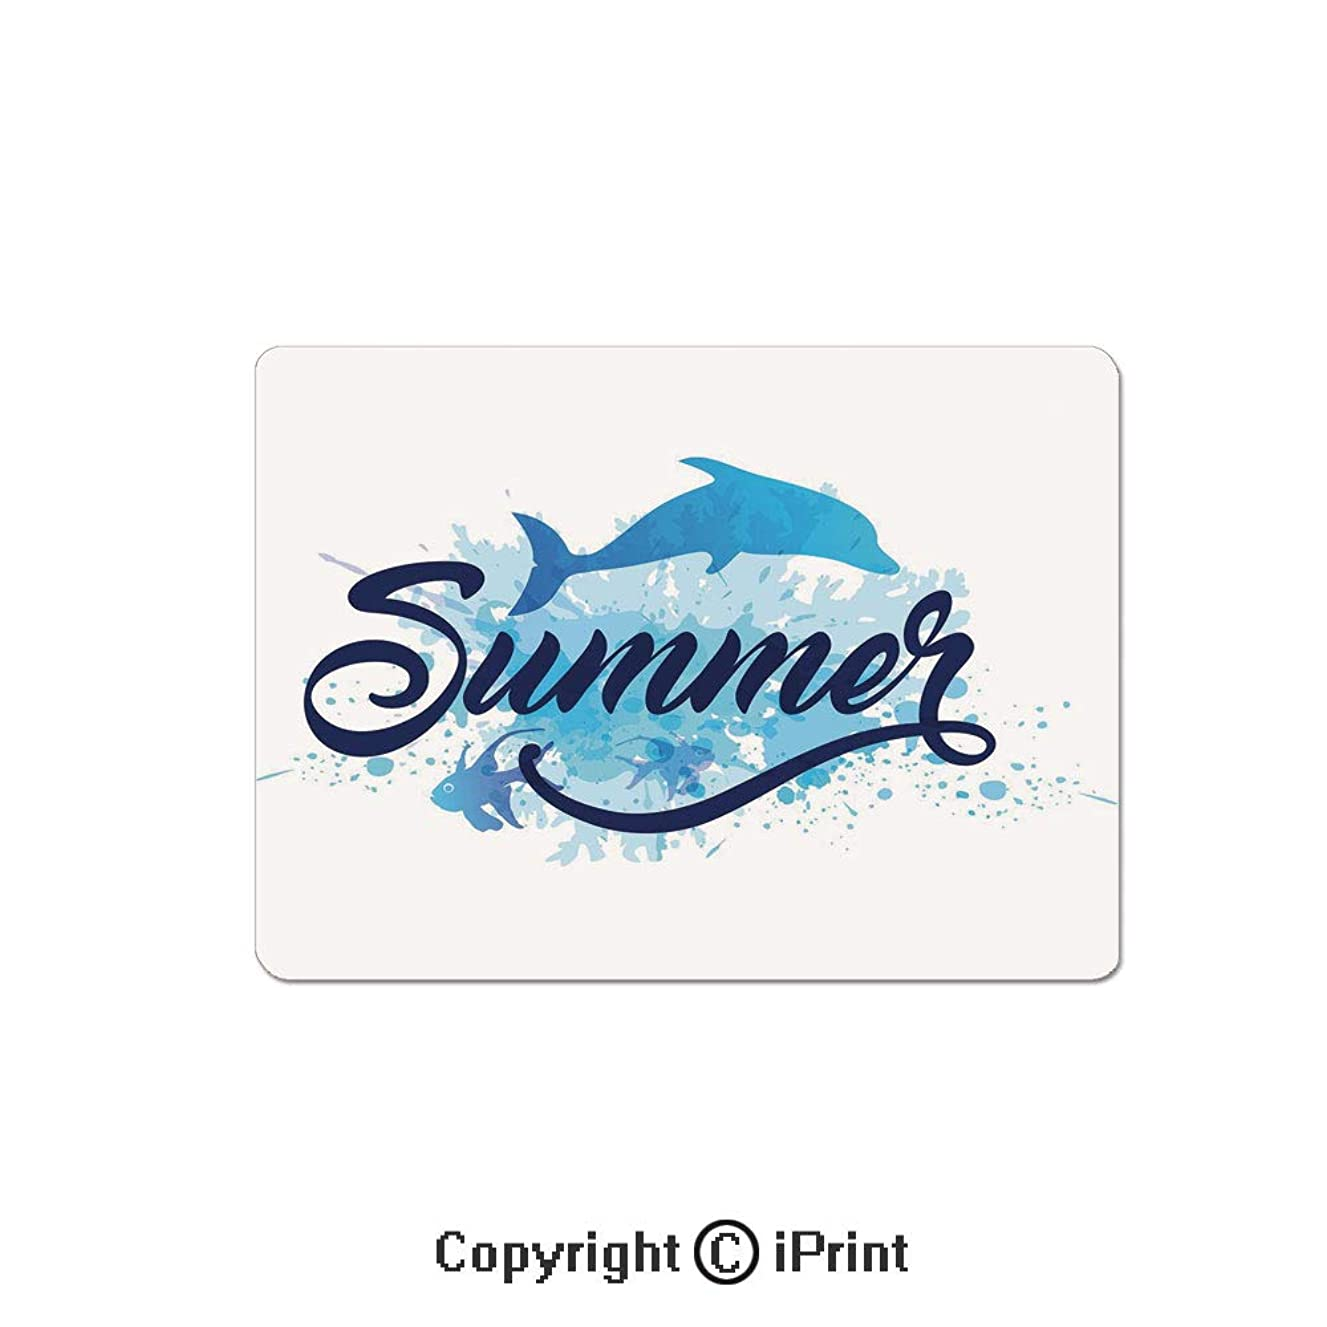 Oversized Mouse Pad,Abstract Summer Lettering with Fish and Dolphin with Color Splashes Image Decorative Gaming Keyboard Pad,9.8x11.8 inch Non-Slip Office Computer Desk Mat,Dark Blue Pale Blue